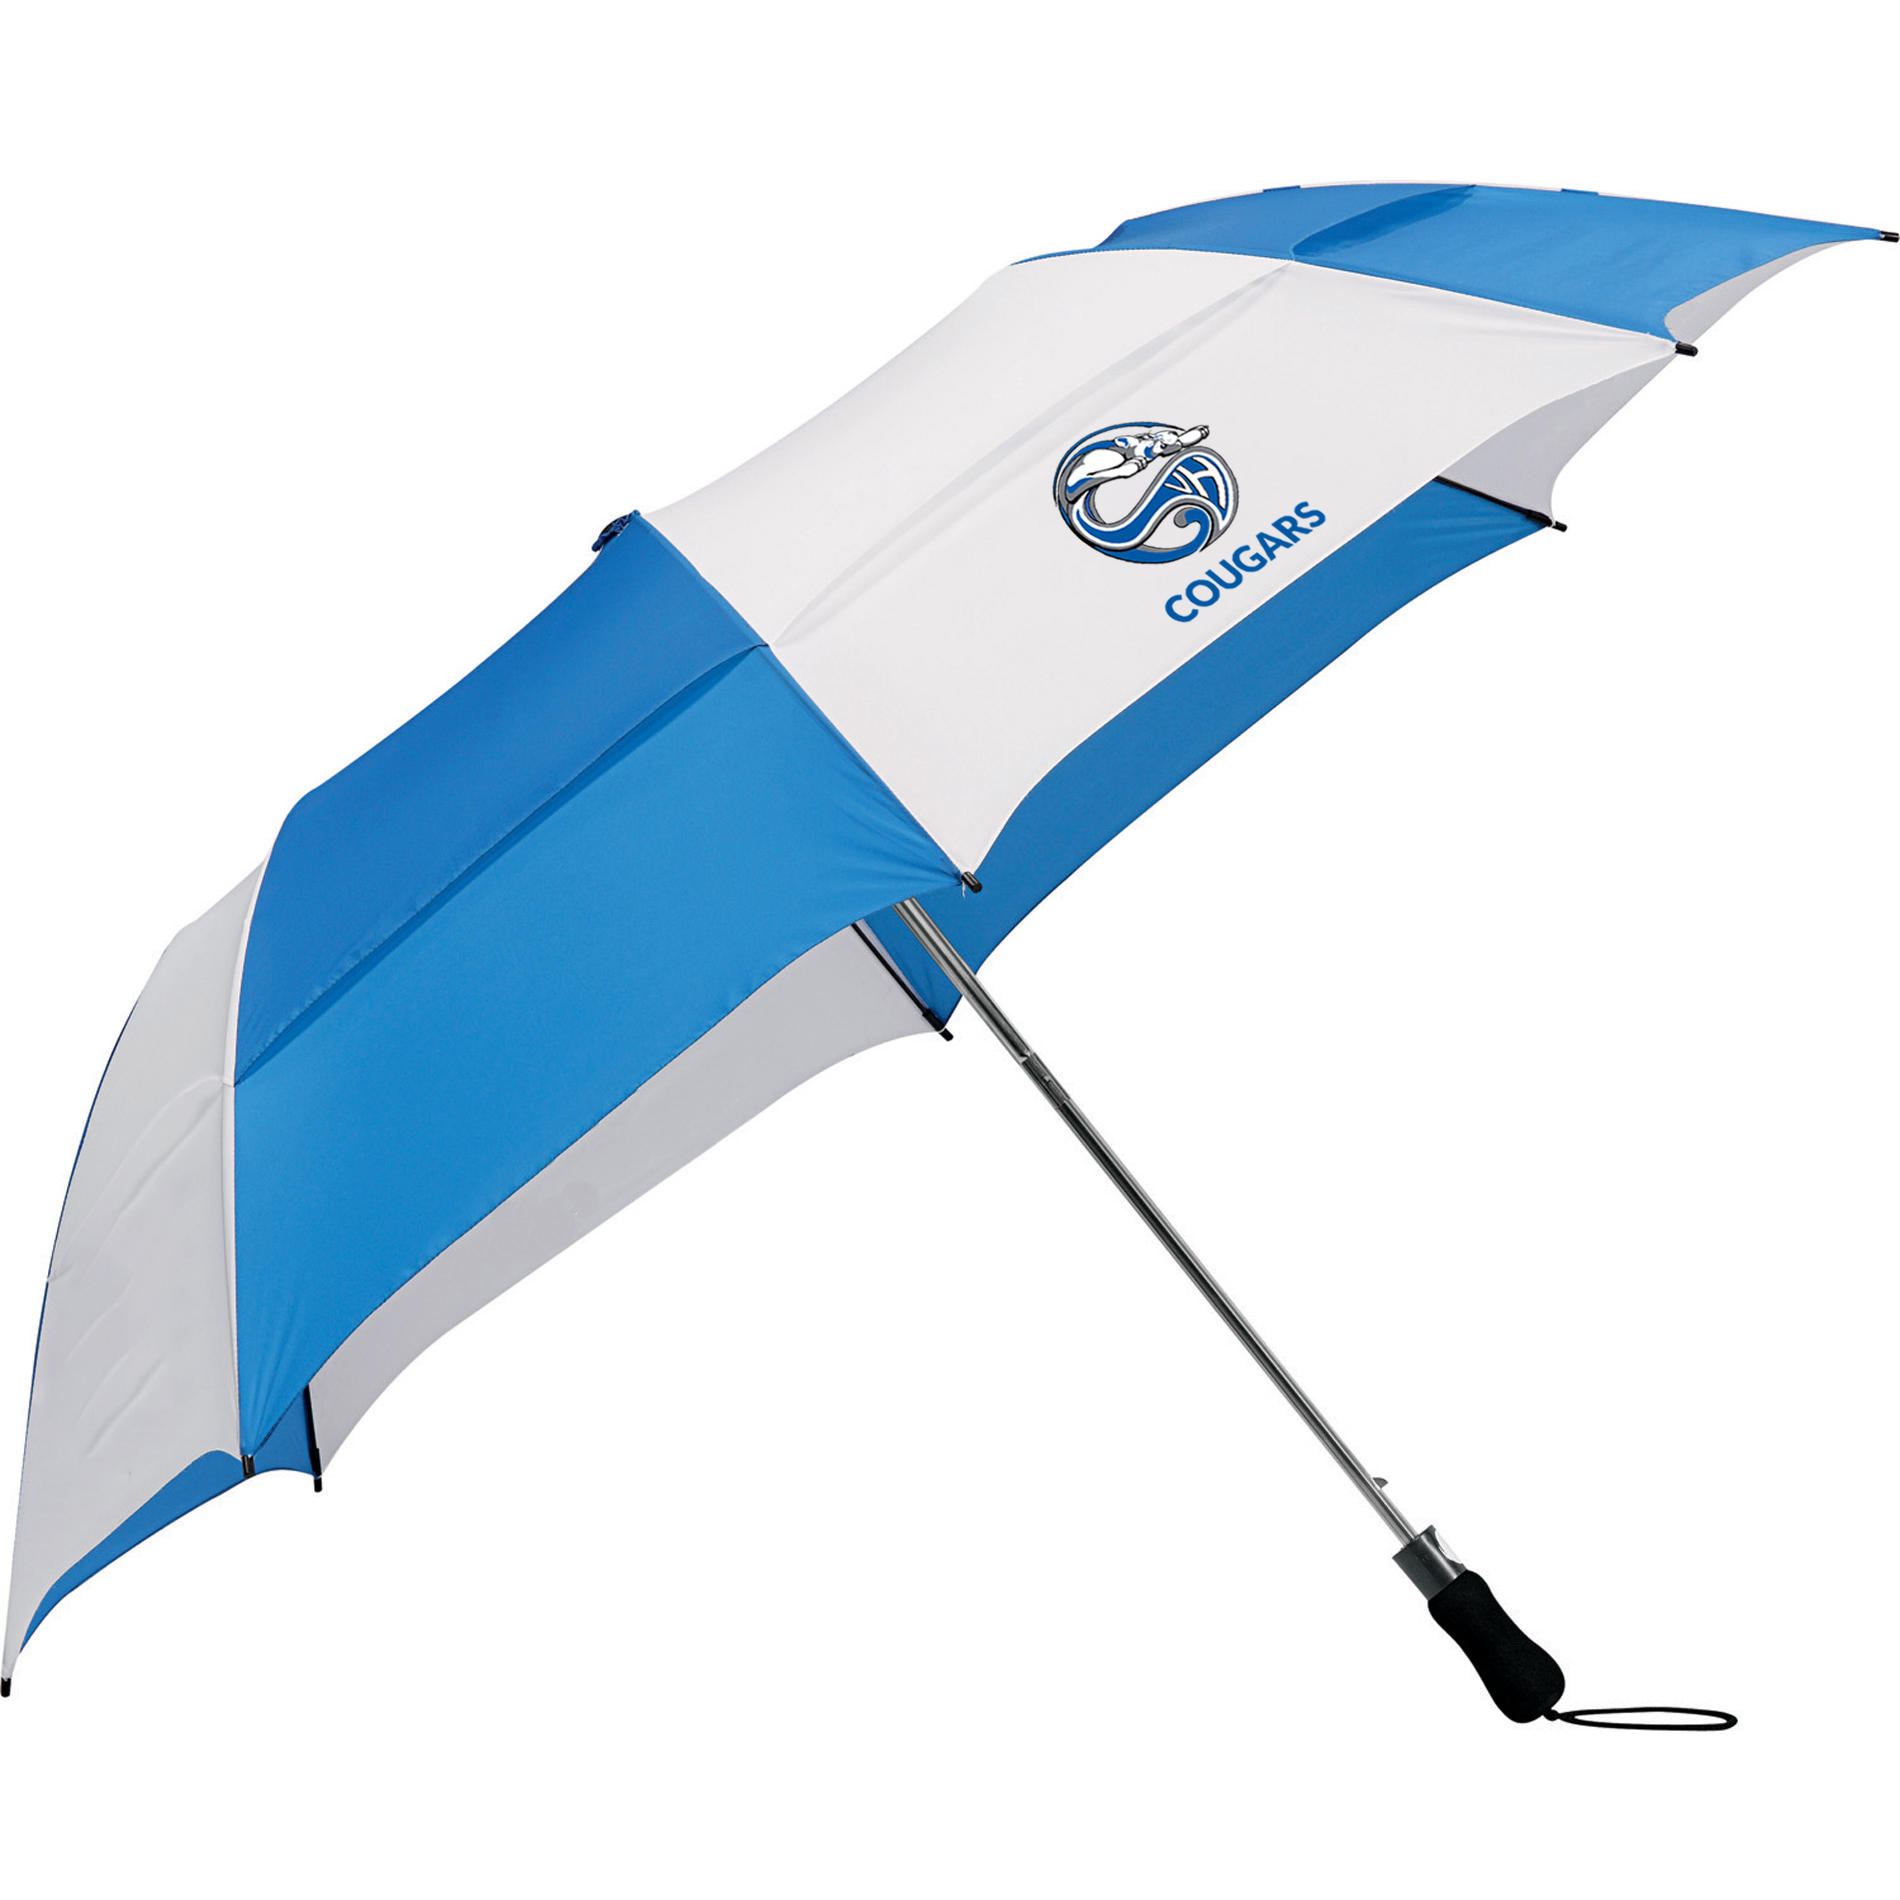 58 inch vented auto open umbrella